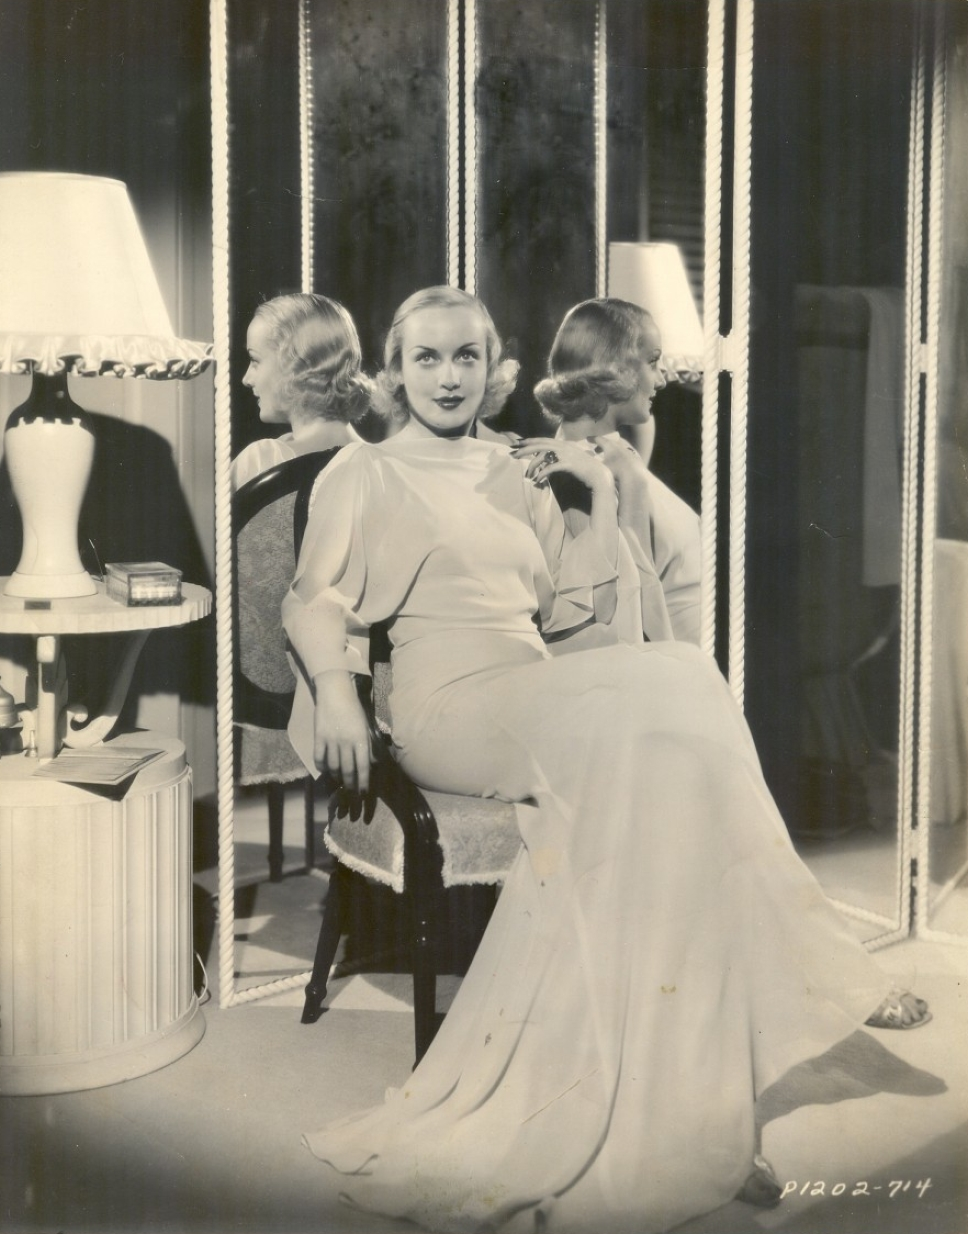 carole lombard p1202-714a front